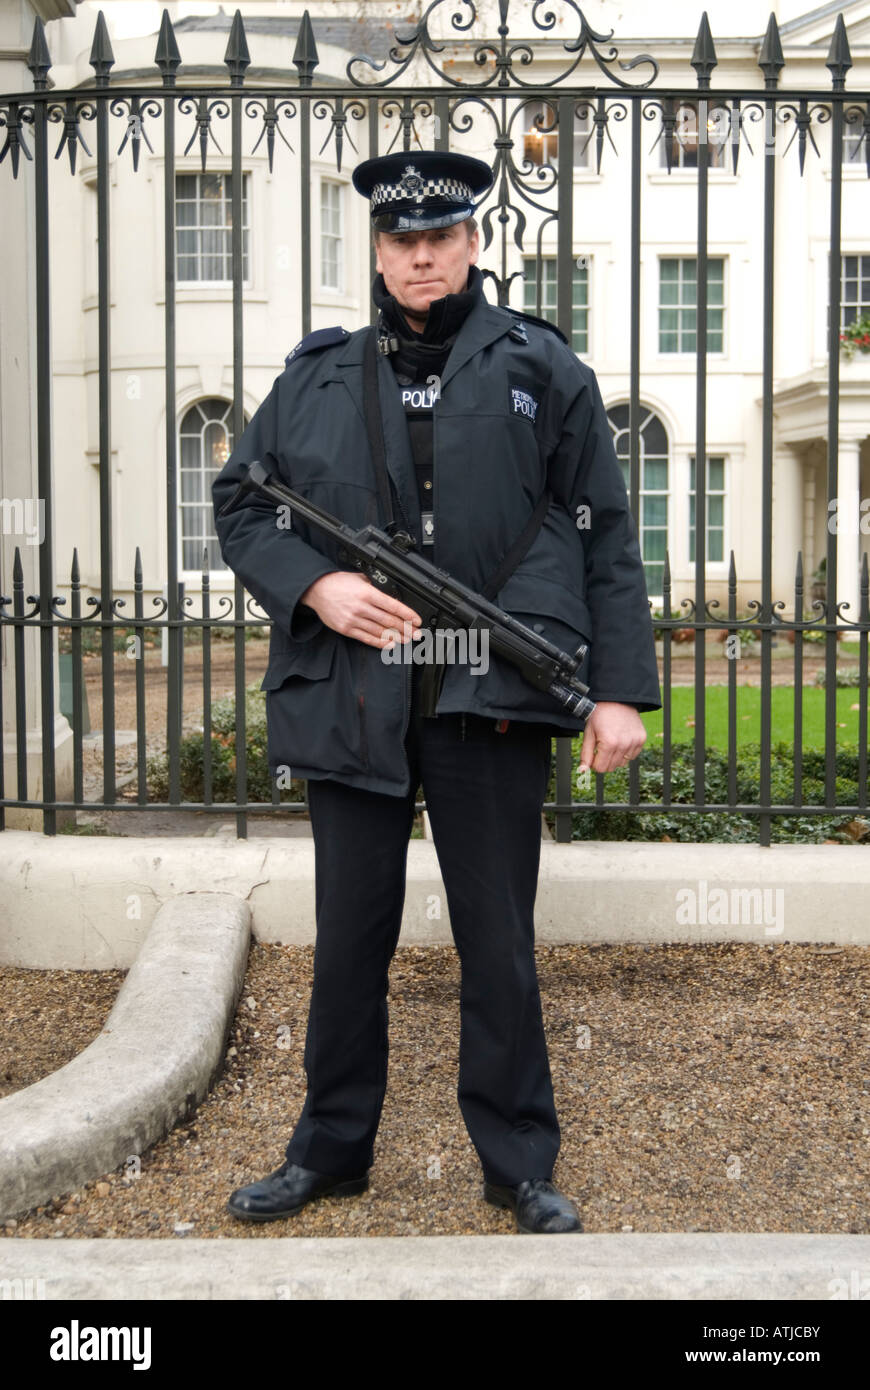 Armed policeman holding a Heckler and Koch submachine gun, London England UK - Stock Image